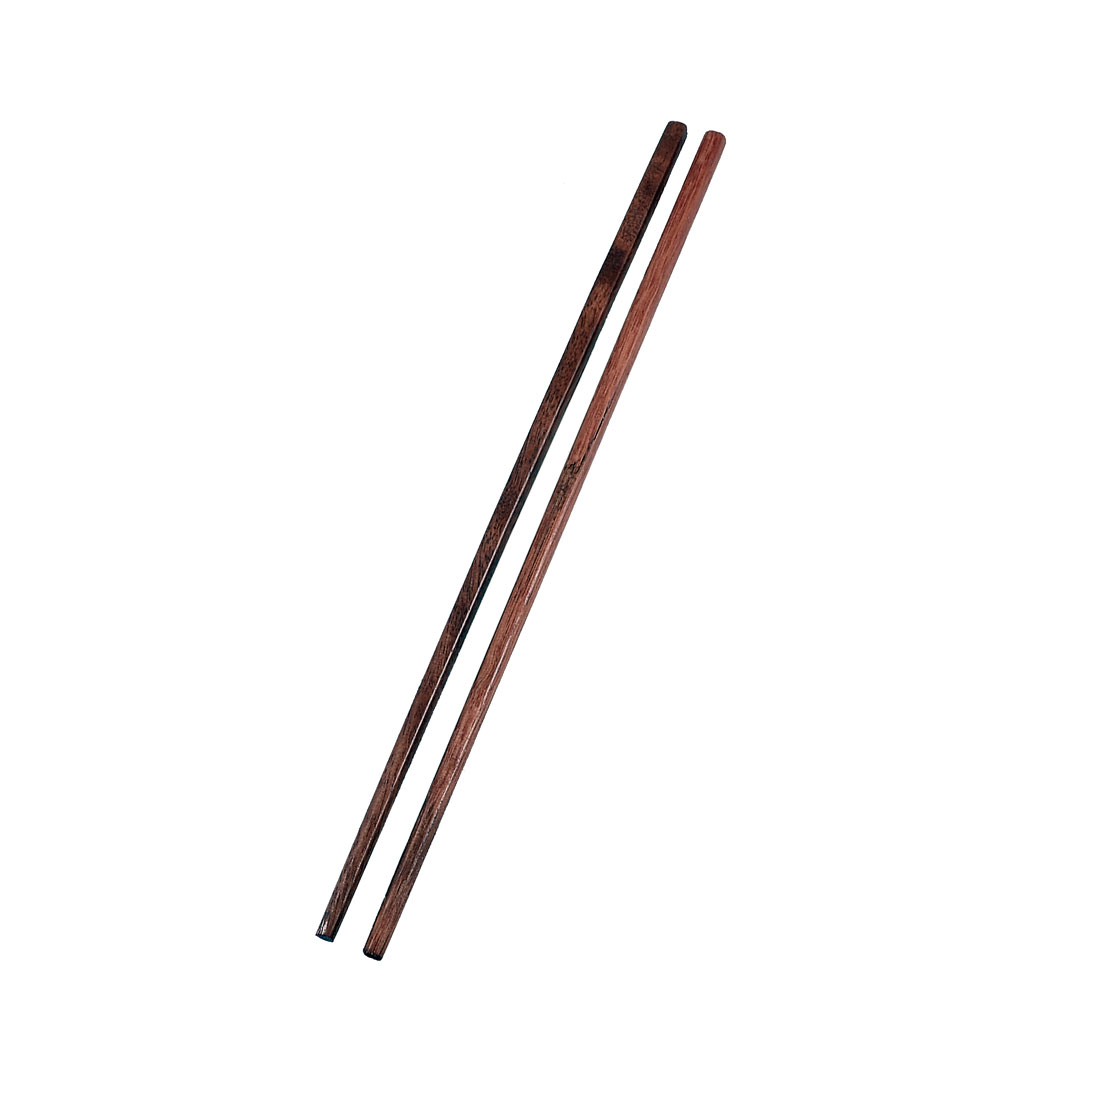 "5 Pairs Square Top 9.5"" Length Brown Wooden Chopsticks Kitchen Tool"